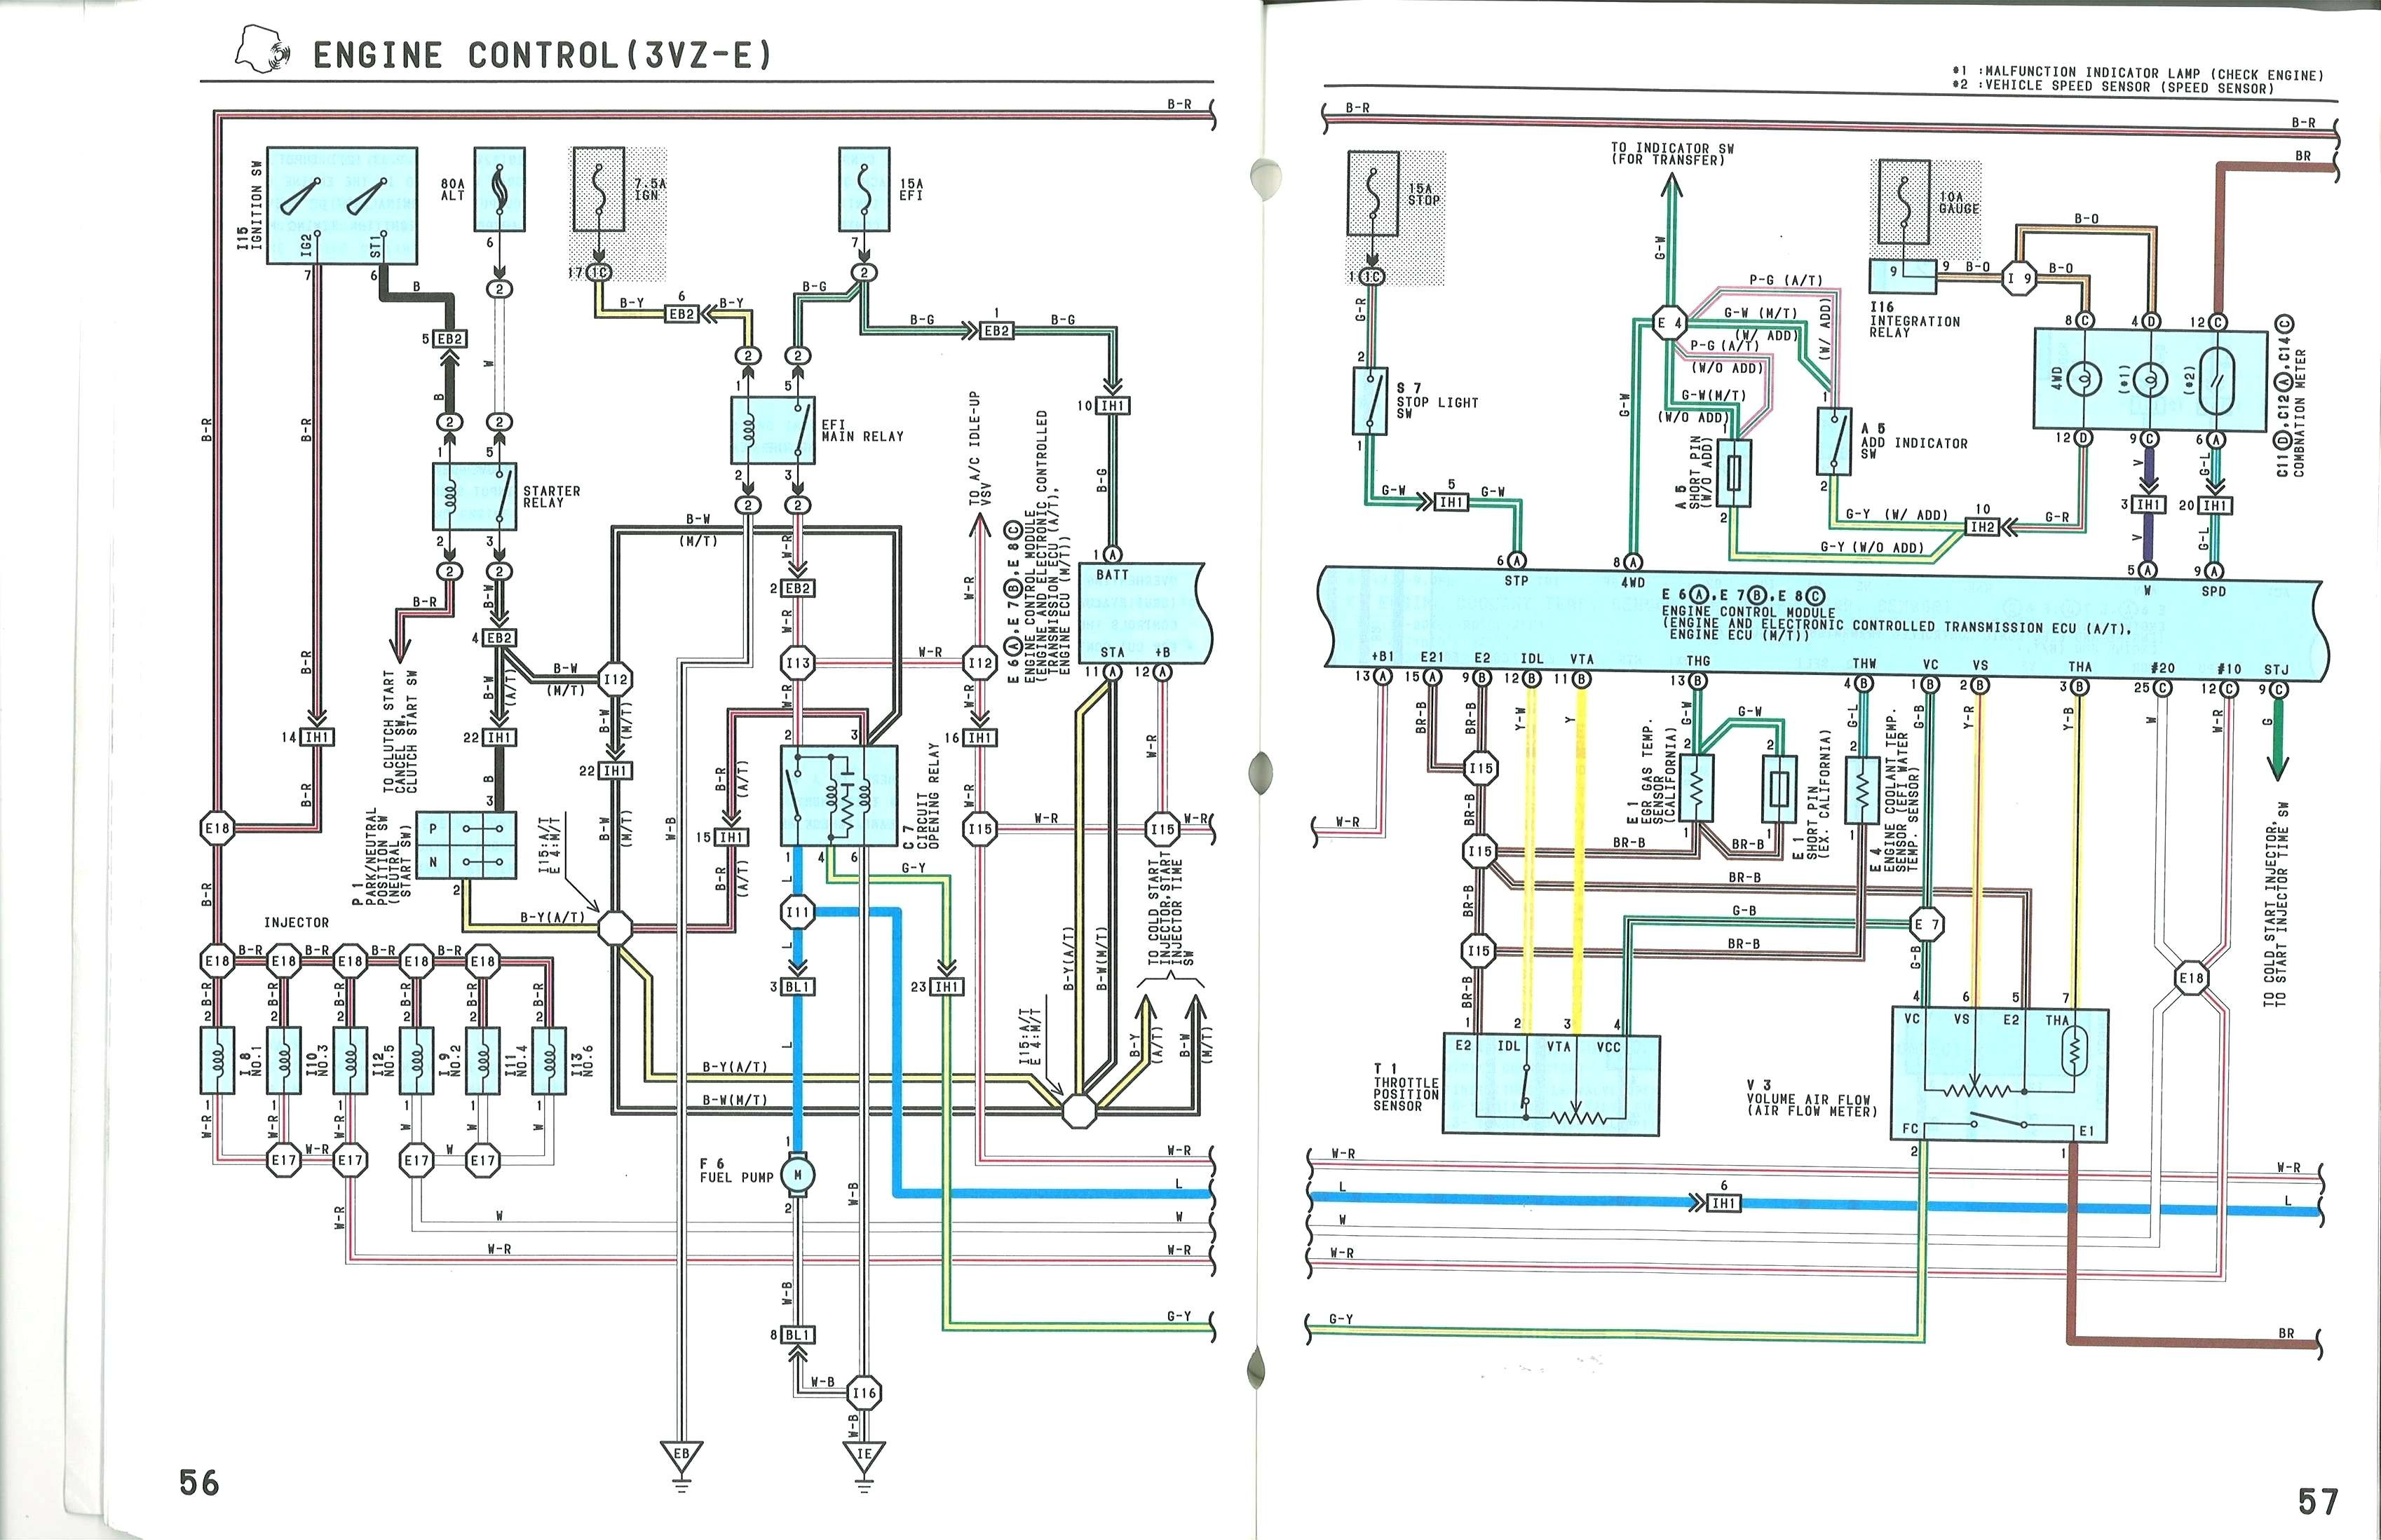 1986 Toyota Pickup 22r Wiring Diagram Solutions Diagrams Automotive 1994 22re Engine Rebuild Auto Electrical